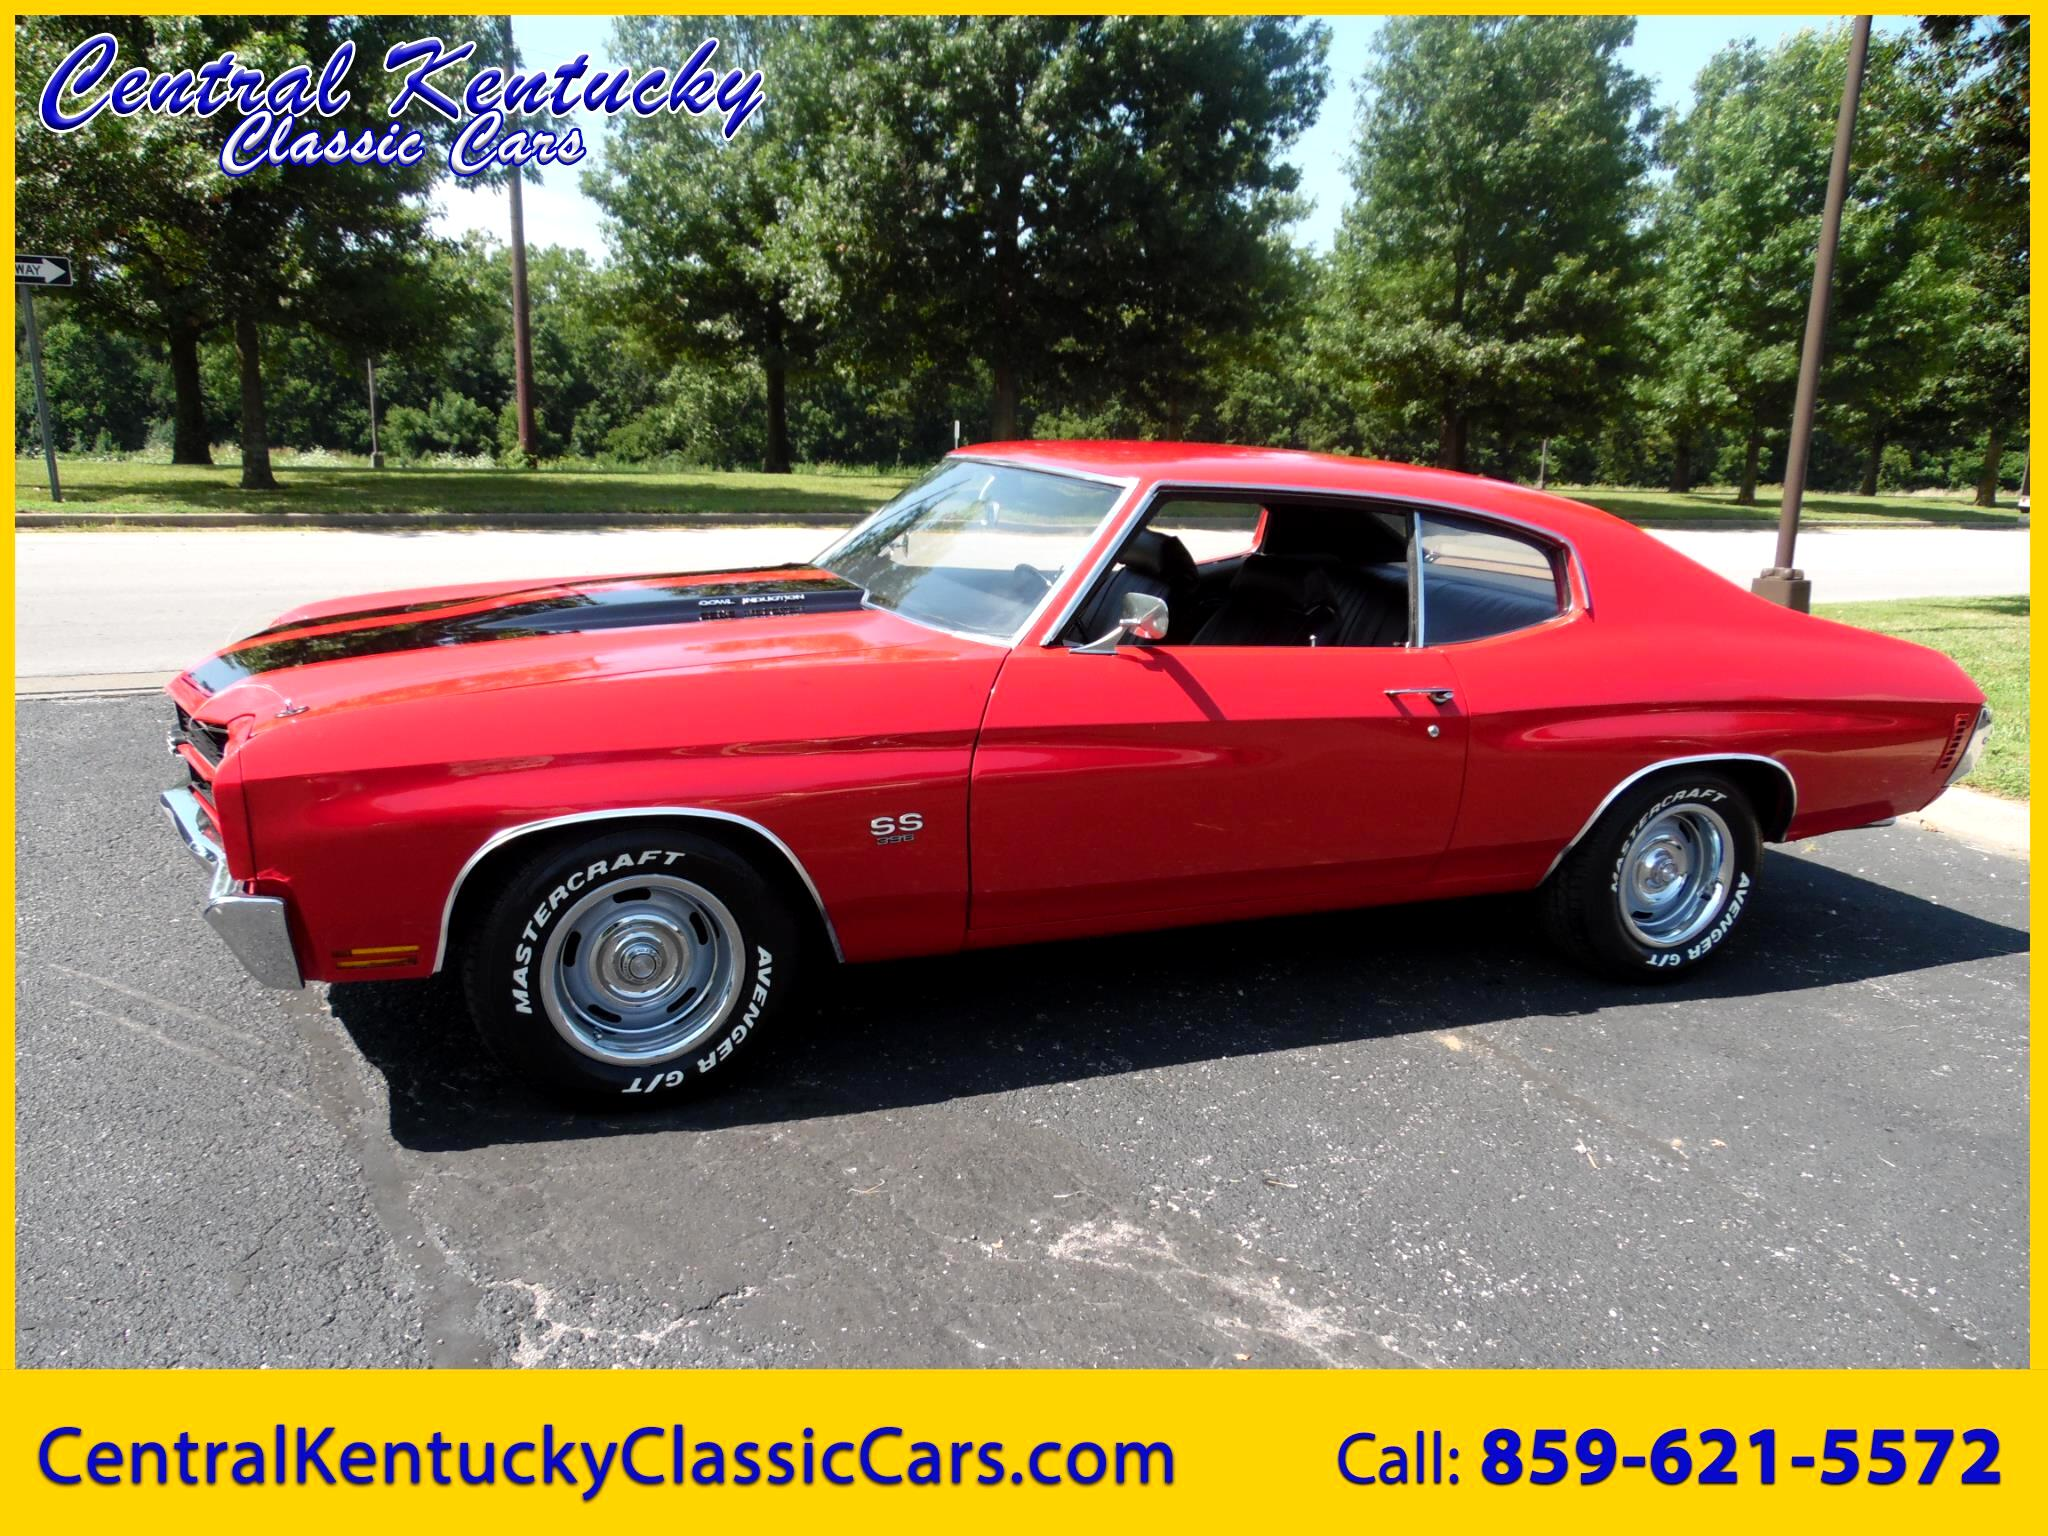 Used Cars for Sale Paris KY 40361 Central Kentucky Classic Cars